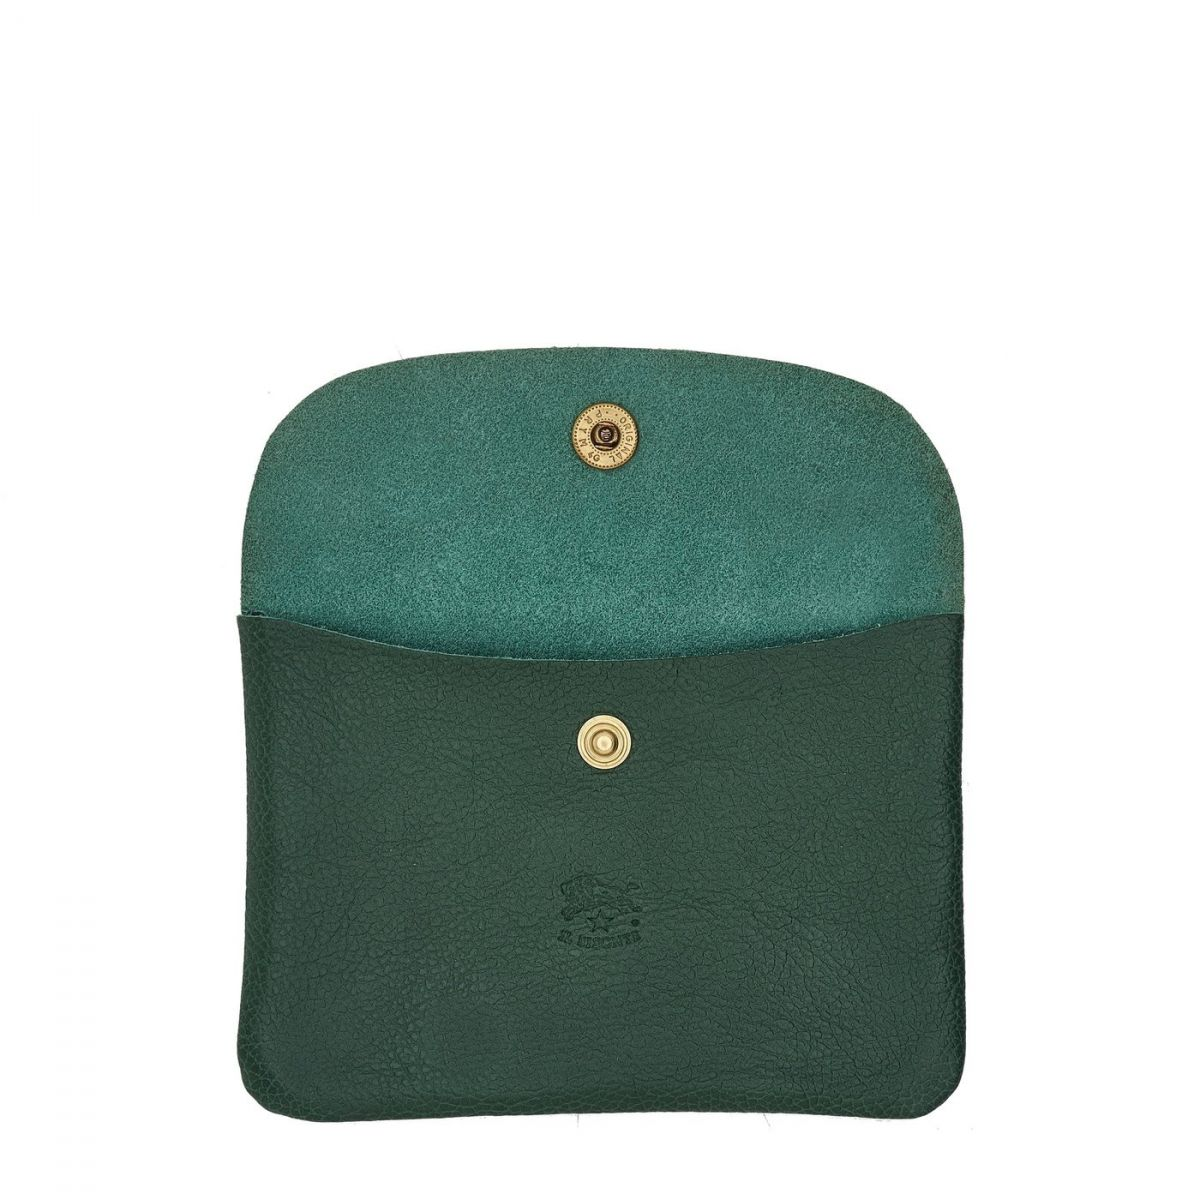 Case in Cowhide Double Leather SCA008 color Green | Details